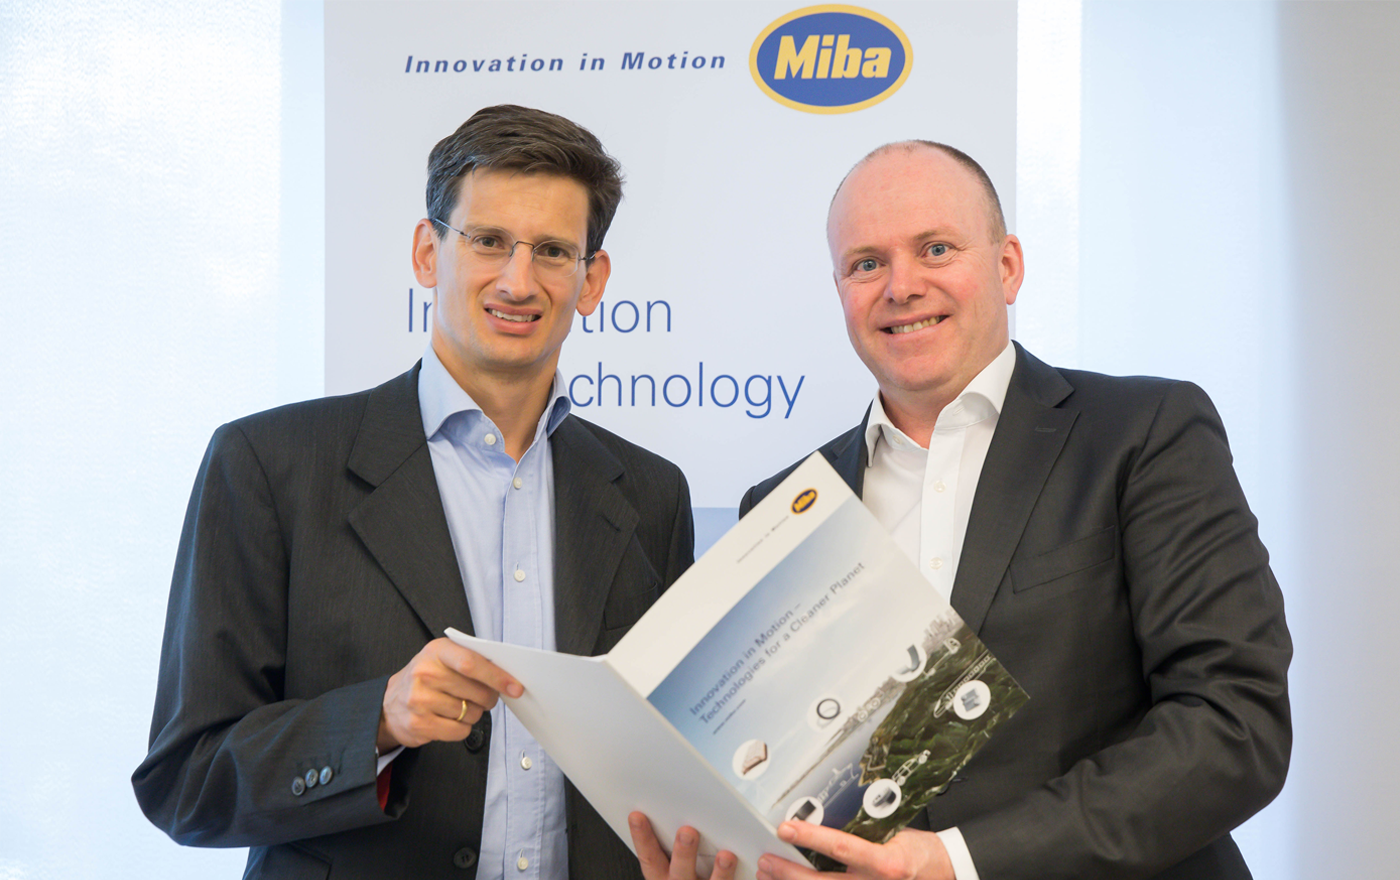 F. Peter Mitterbauer and Markus Hofer at the press conference